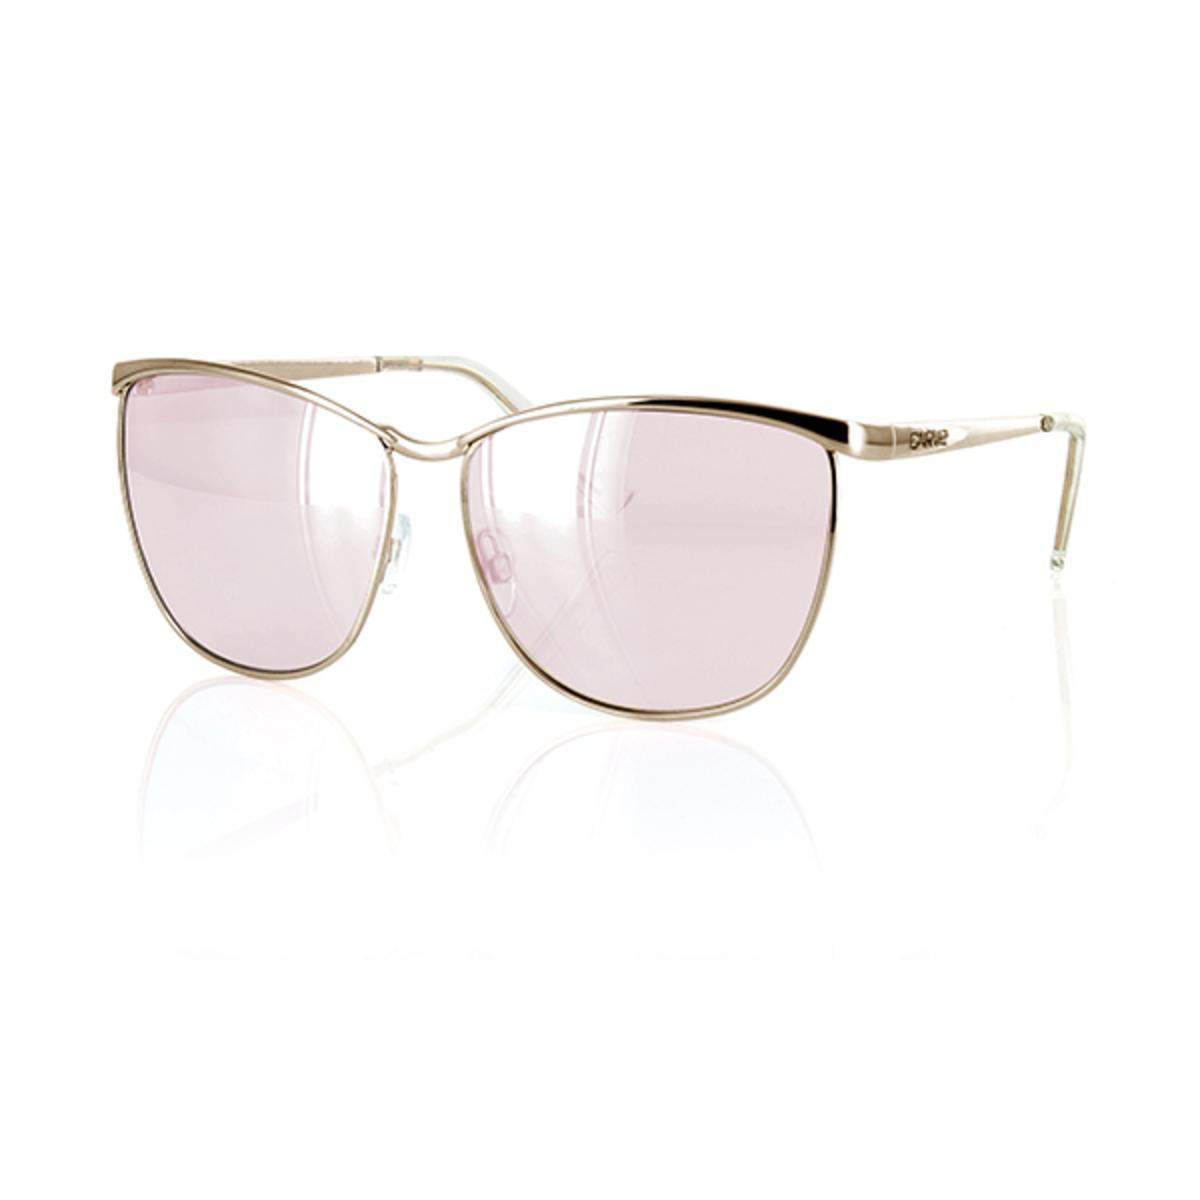 Carve The Amanda Women's Sunglasses